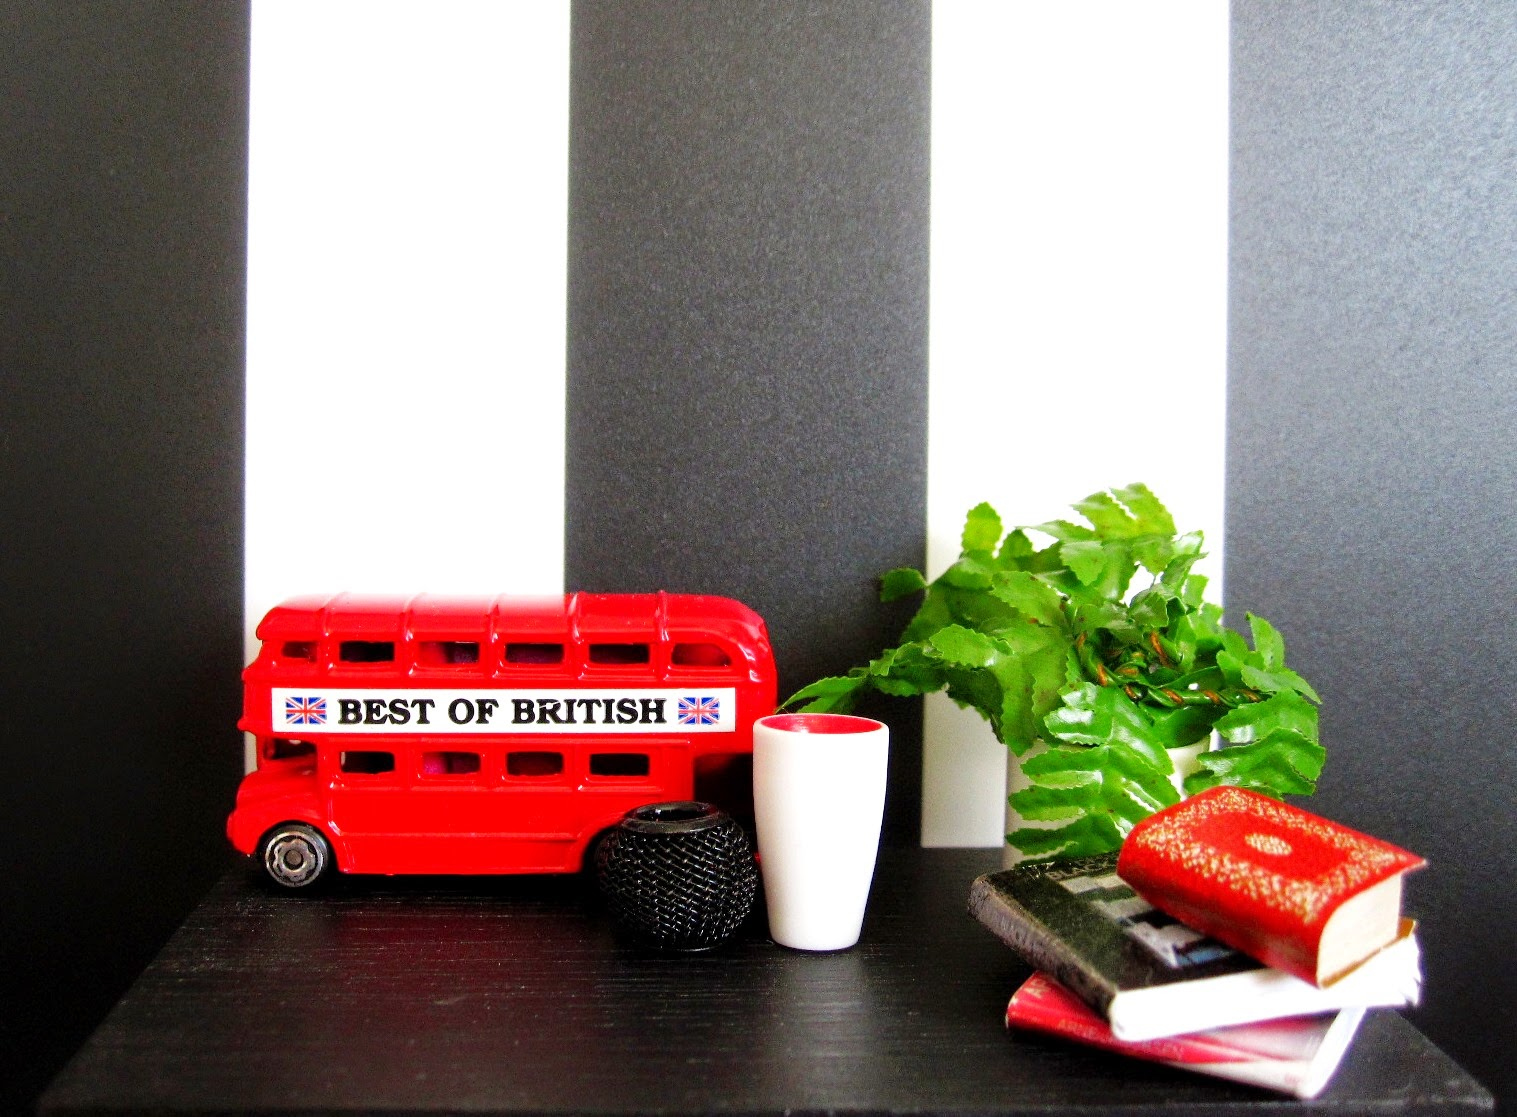 Modern miniature black table displaying a model London bus, vases, books and a plant in black, white and red.